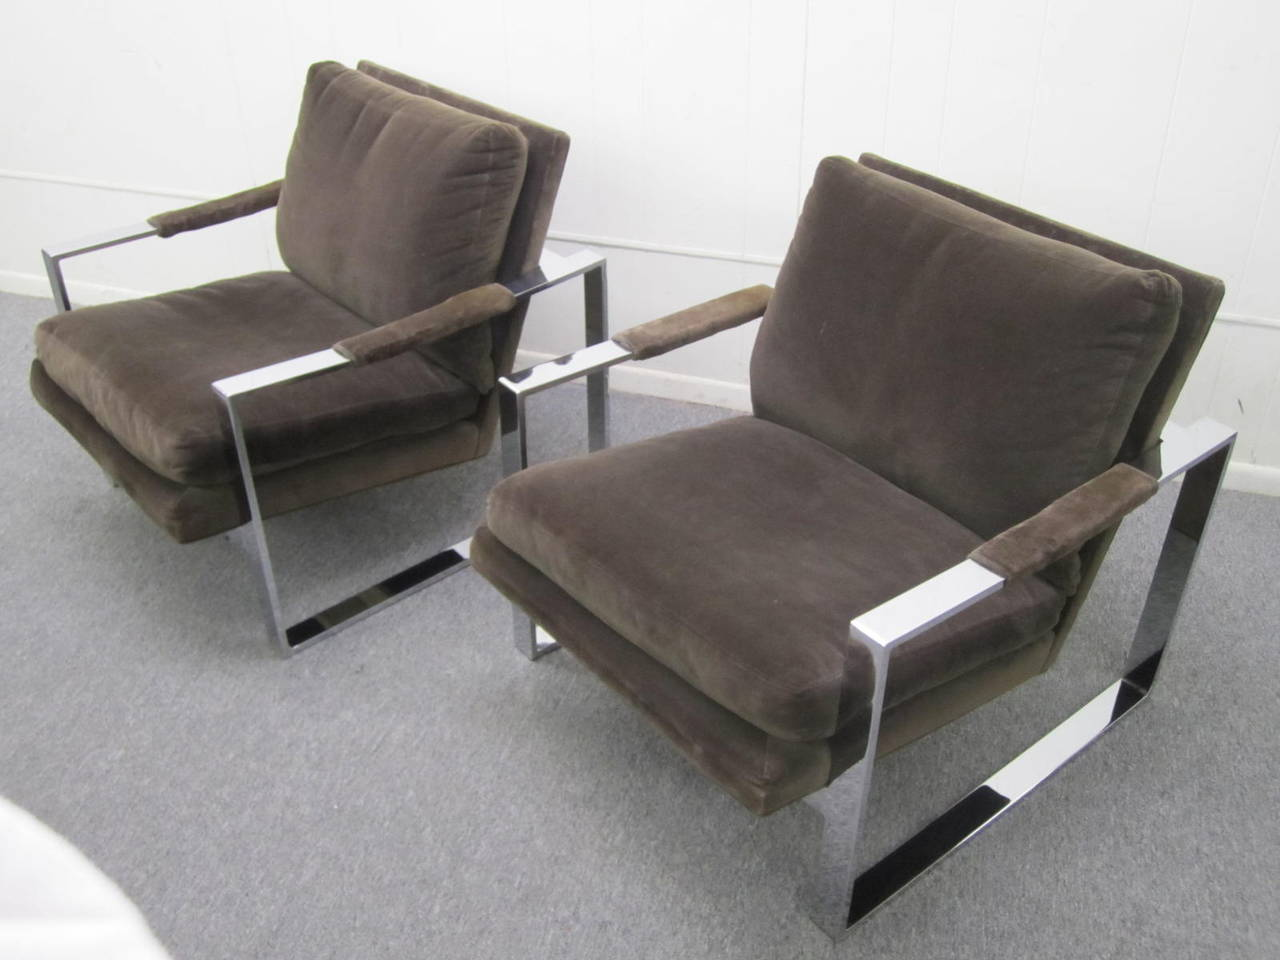 Fabulous Pair of Milo Baughman Chrome Cube Lounge Chairs, Mid-Century Modern For Sale 3